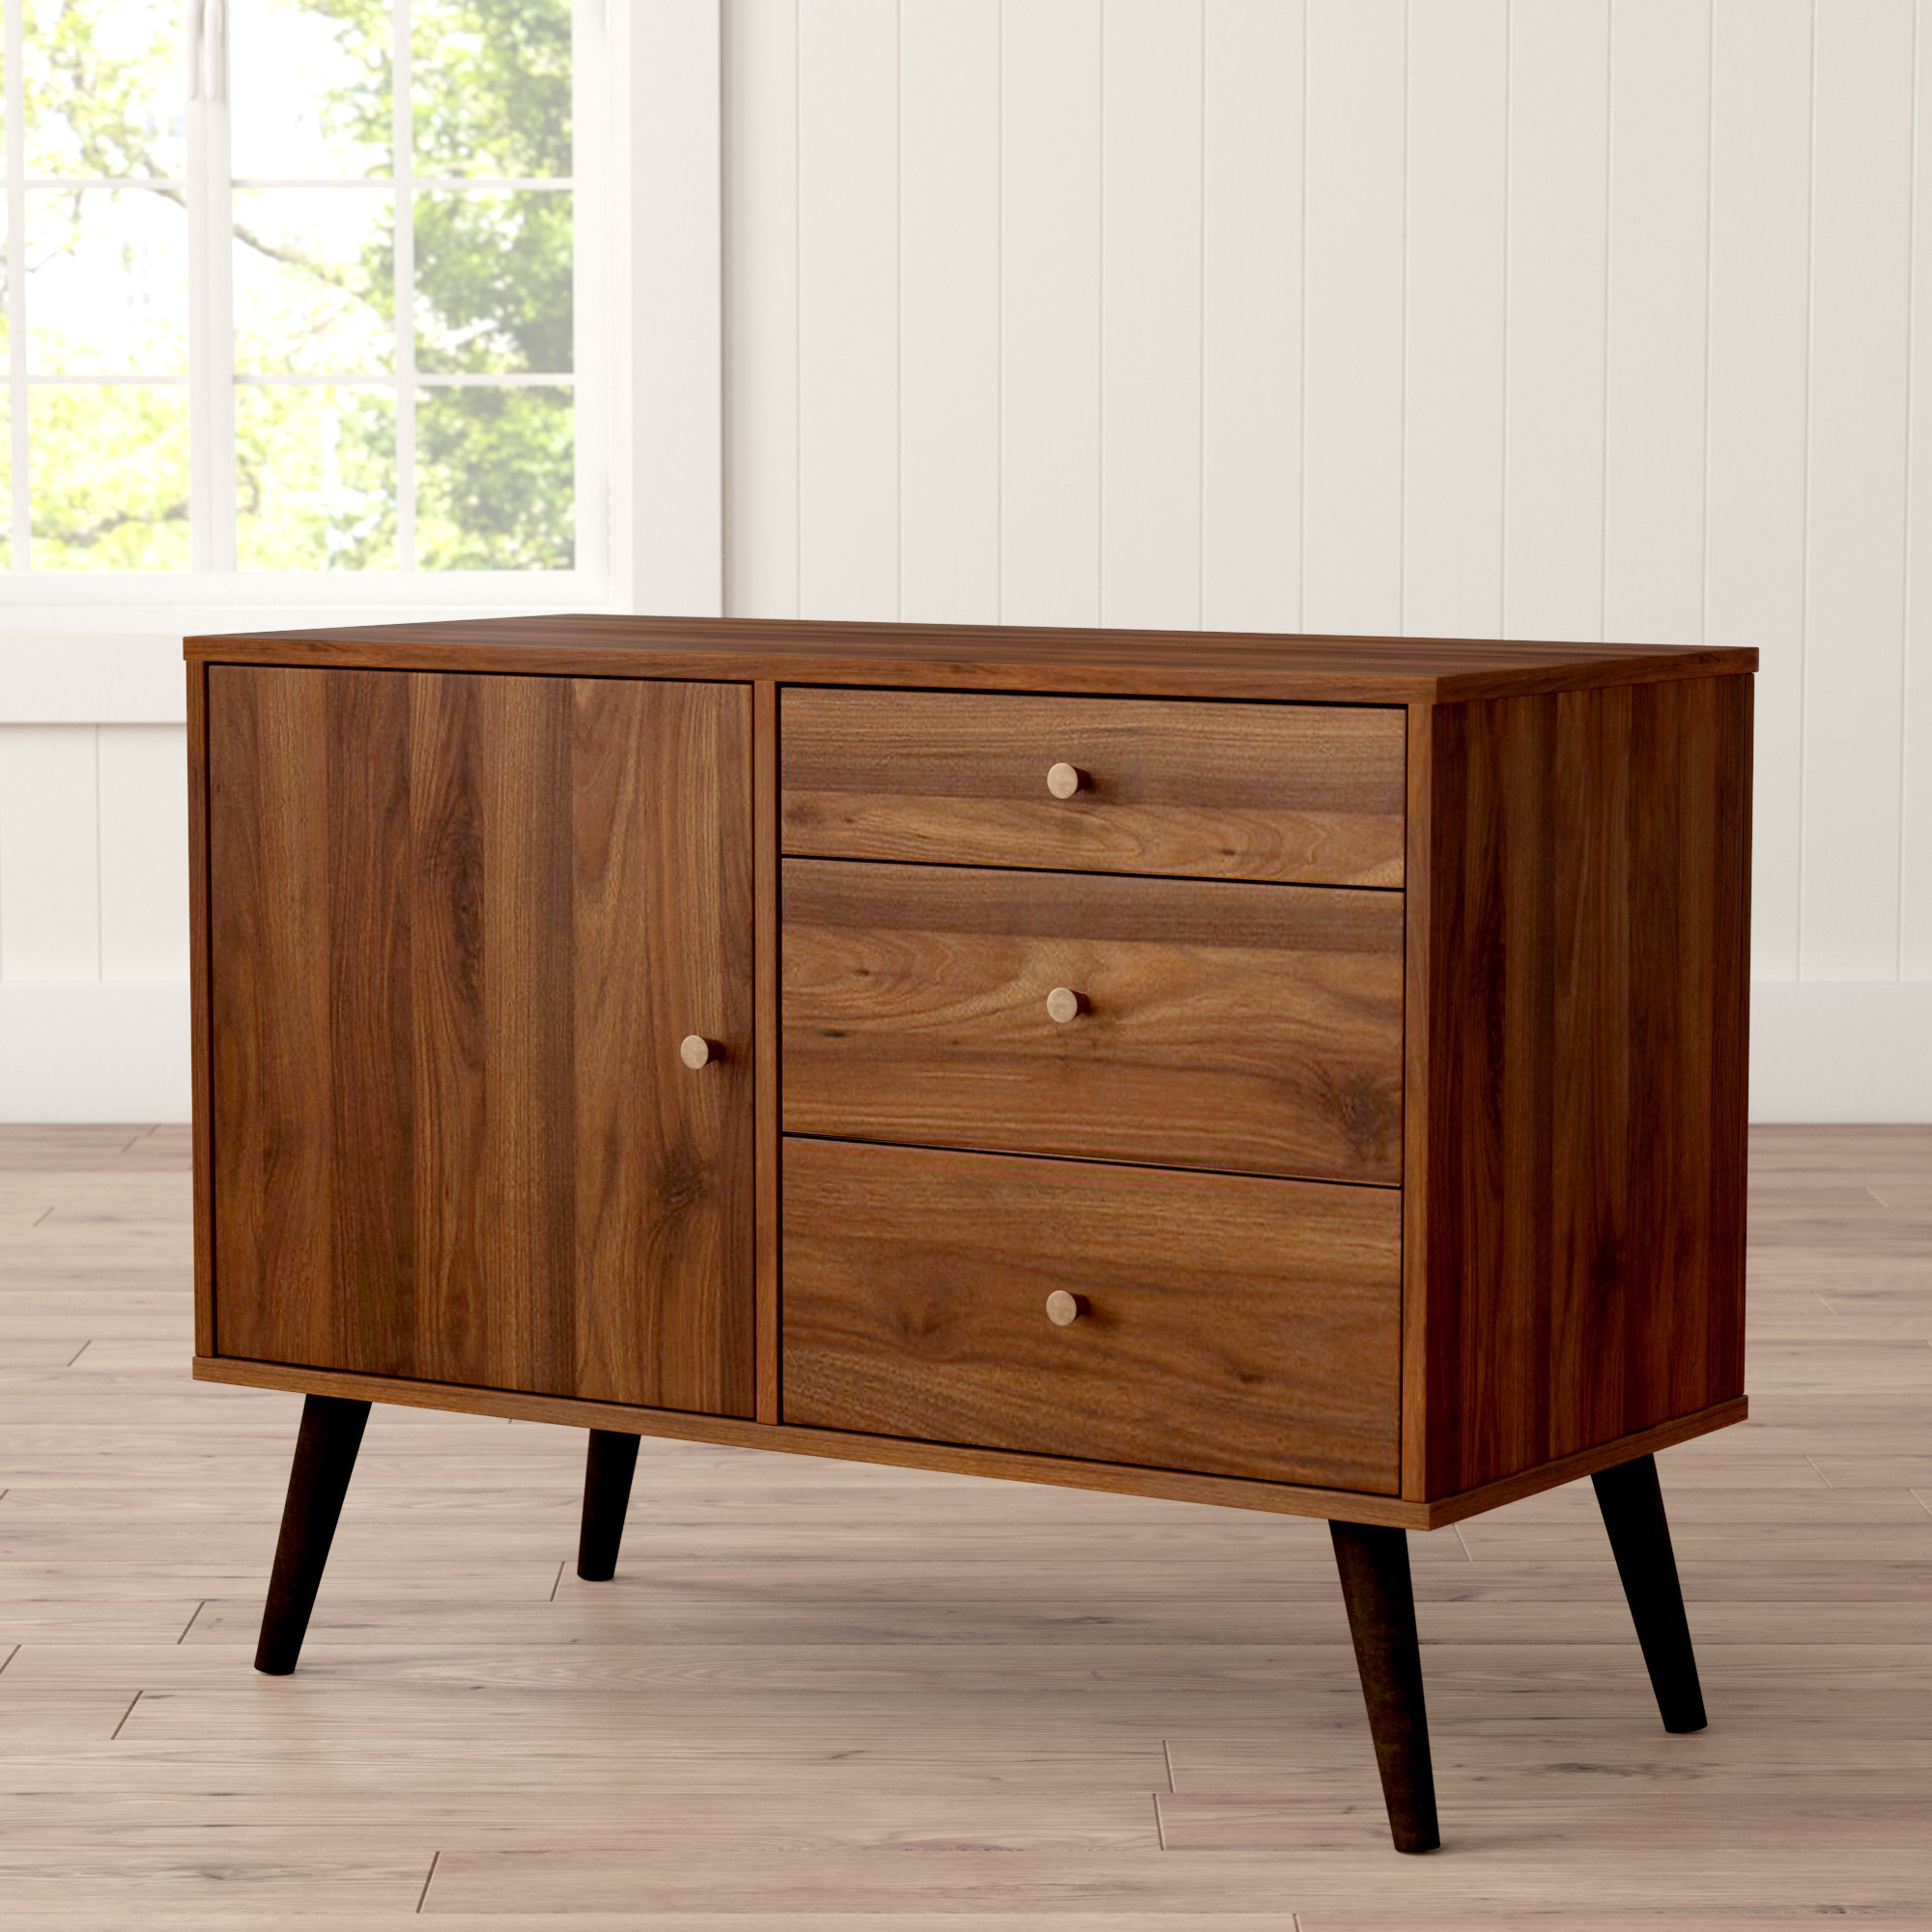 2020 Farmhouse & Rustic Brown Sideboards & Buffets (View 1 of 20)